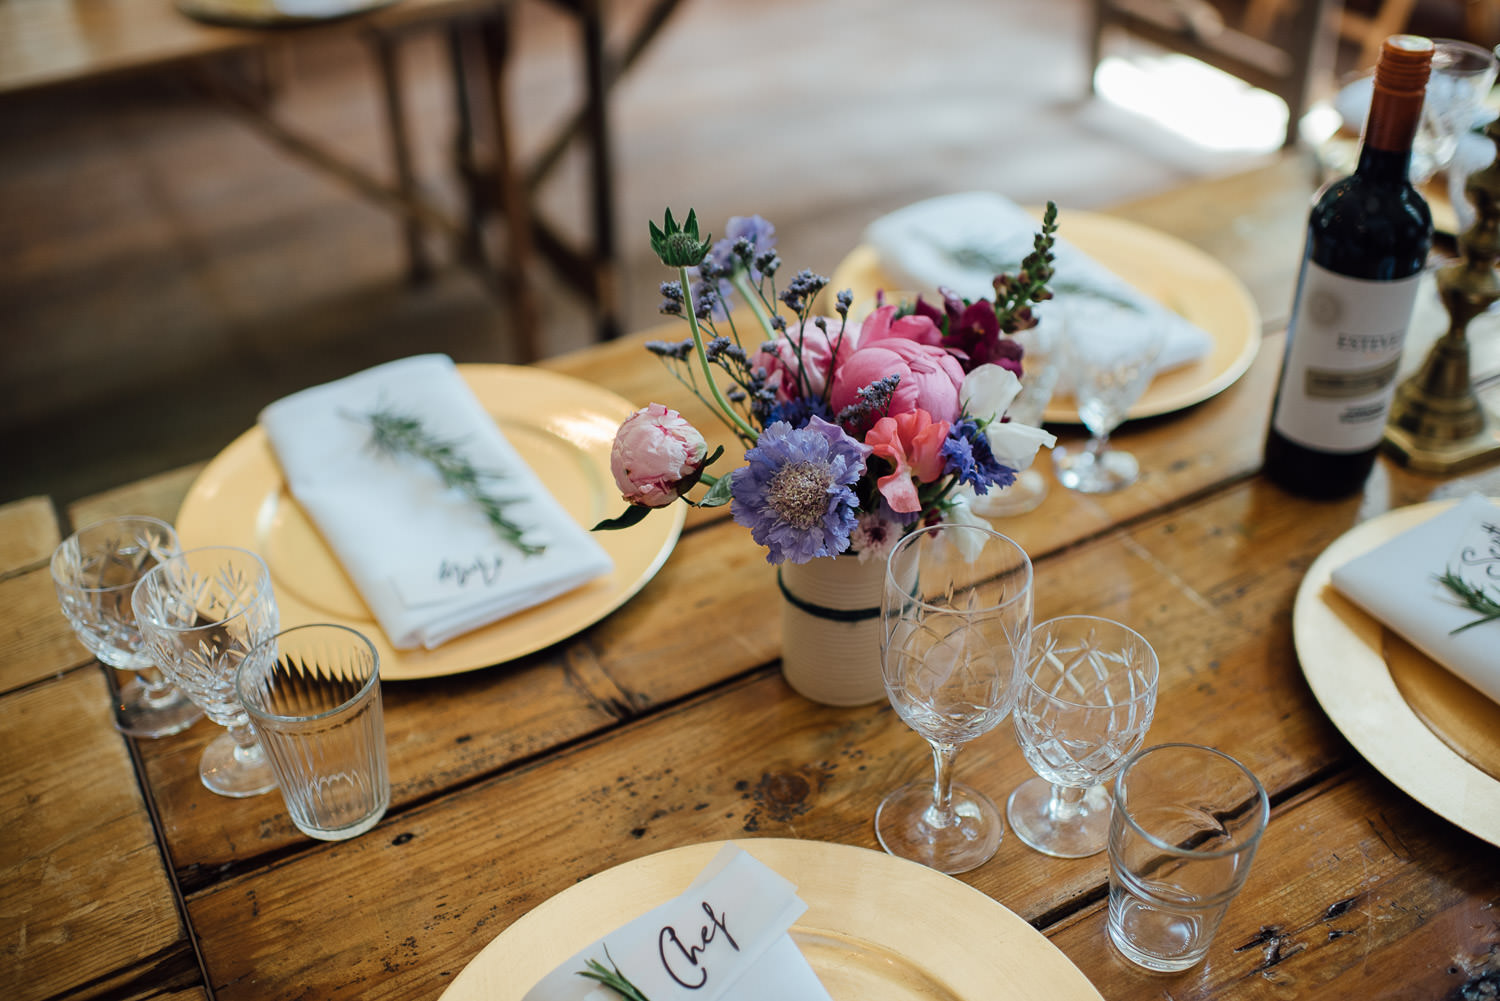 Vintage wedding table decorations in Barley Wood House Bristol Wedding by bristol wedding photographer the shannons photography